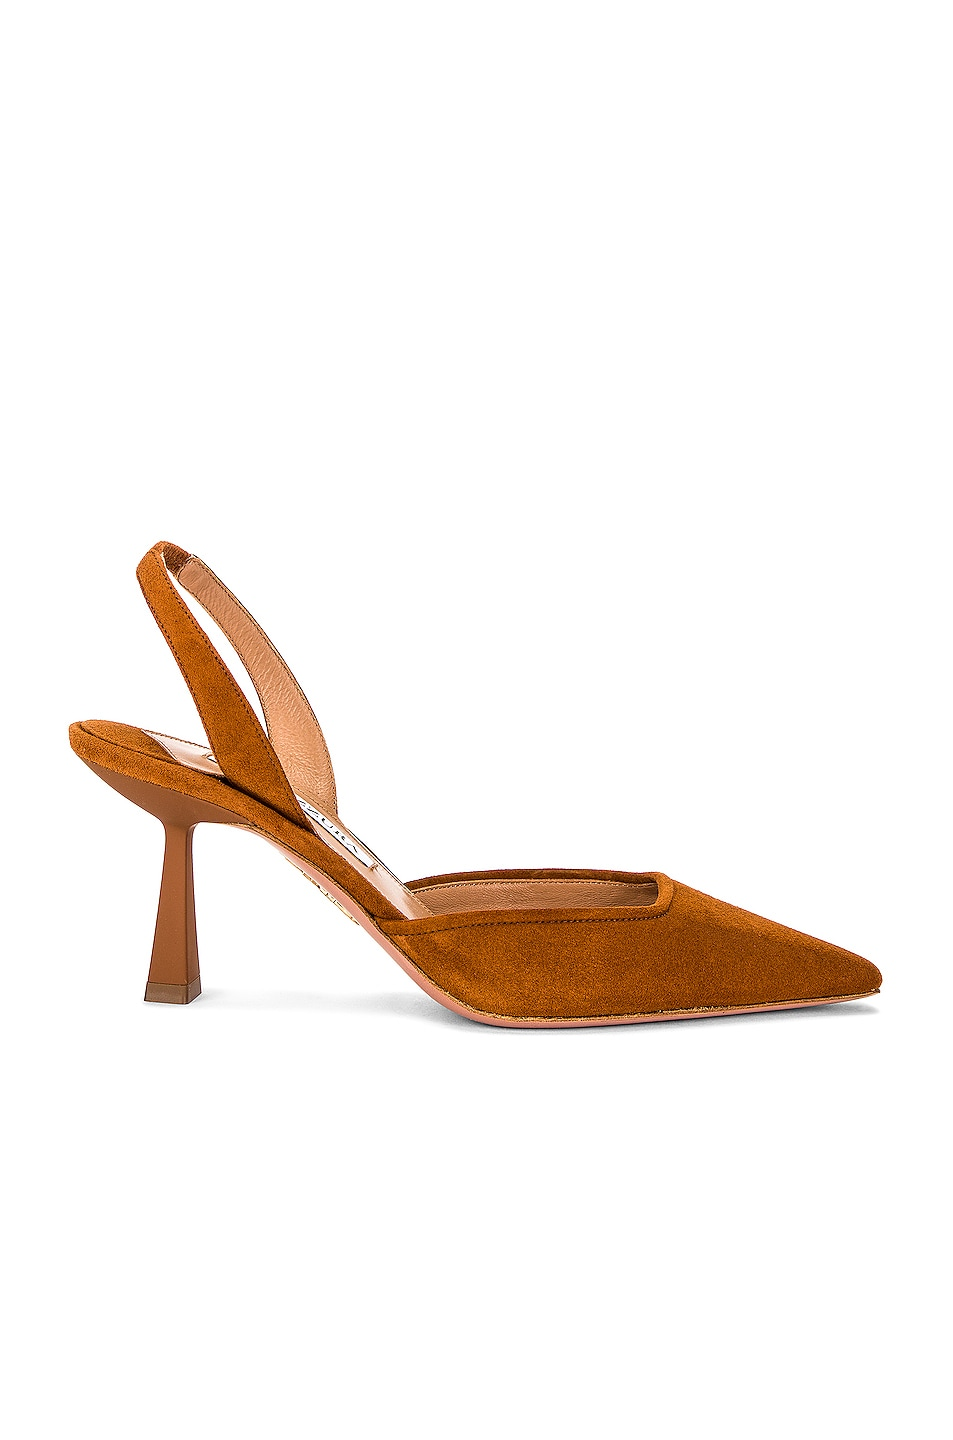 Image 1 of Aquazzura Maia 75 Slingback in Sugar Almond